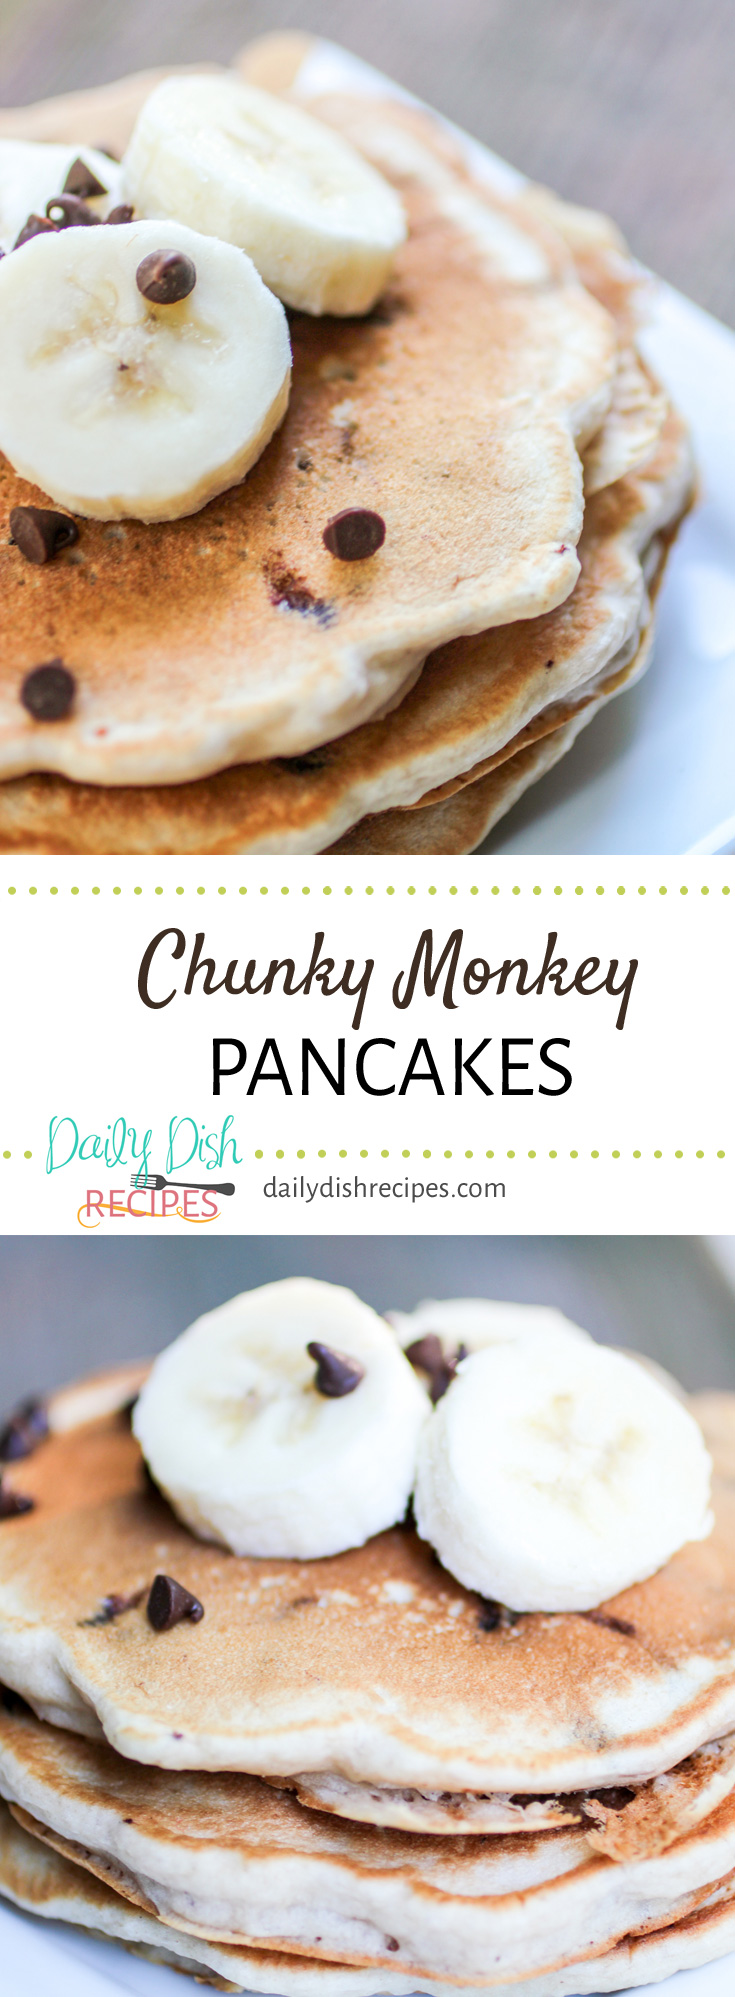 Who doesn't love bananas and chocolate? Chunky Monkey Pancakes are flavorful and delicious. We just stir the bananas and chocolate right into some fluffy pancake batter, and you've got perfection. We enjoyed them for a 'breakfast for dinner' with turkey sausage, bacon and eggs. Delish (and very very filling!)